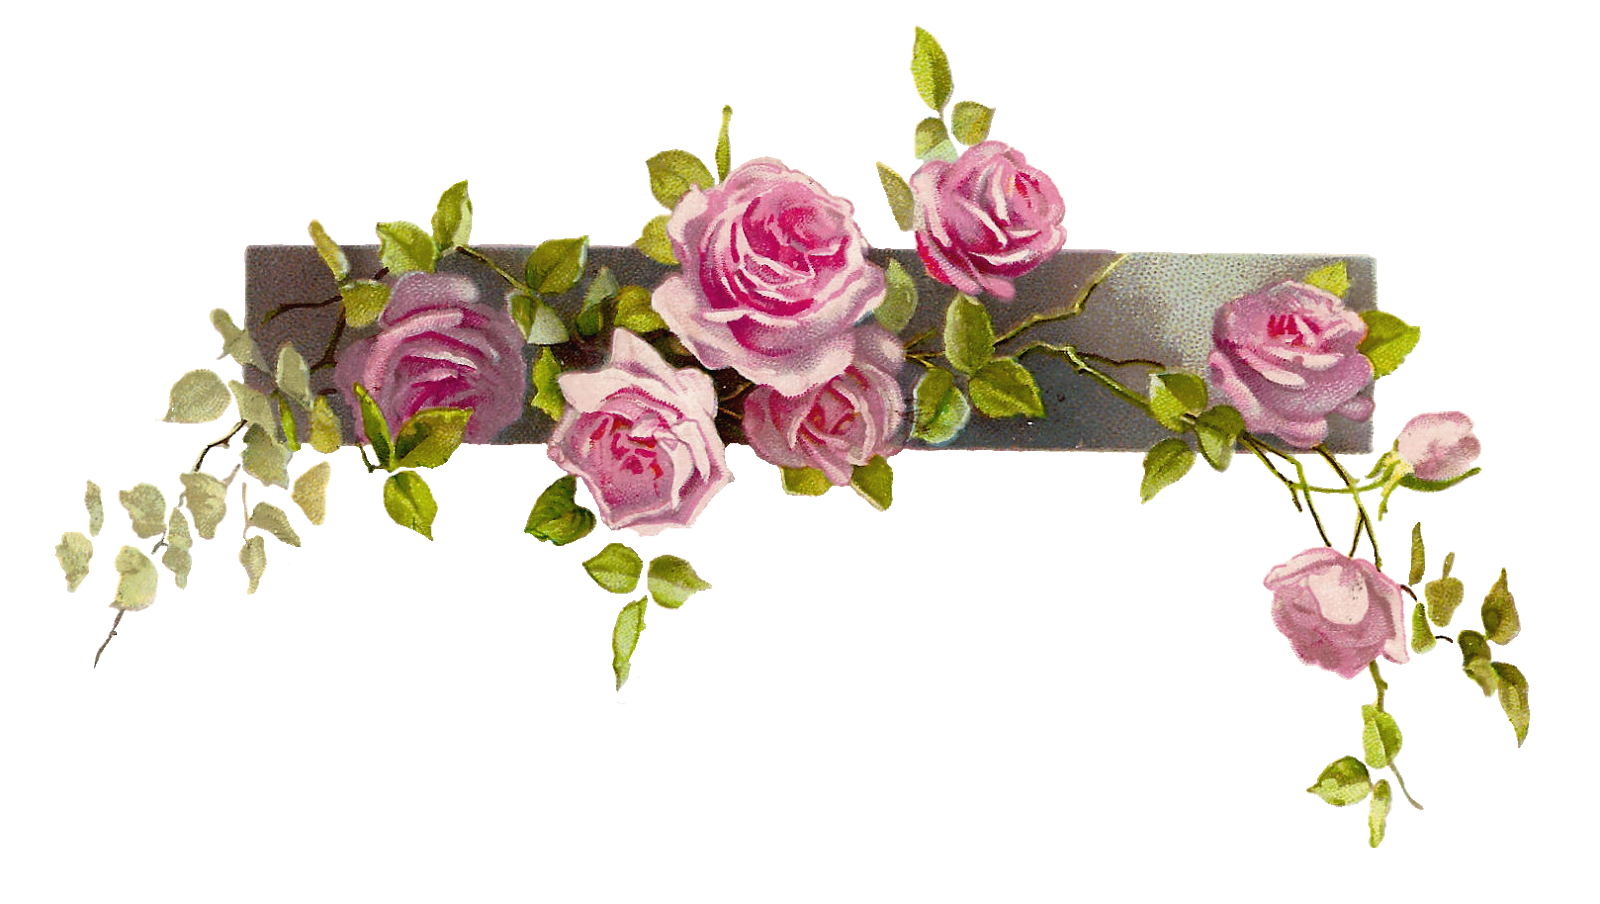 Border Flower Rose Line Free Images At Clker Com Vector Clip Art